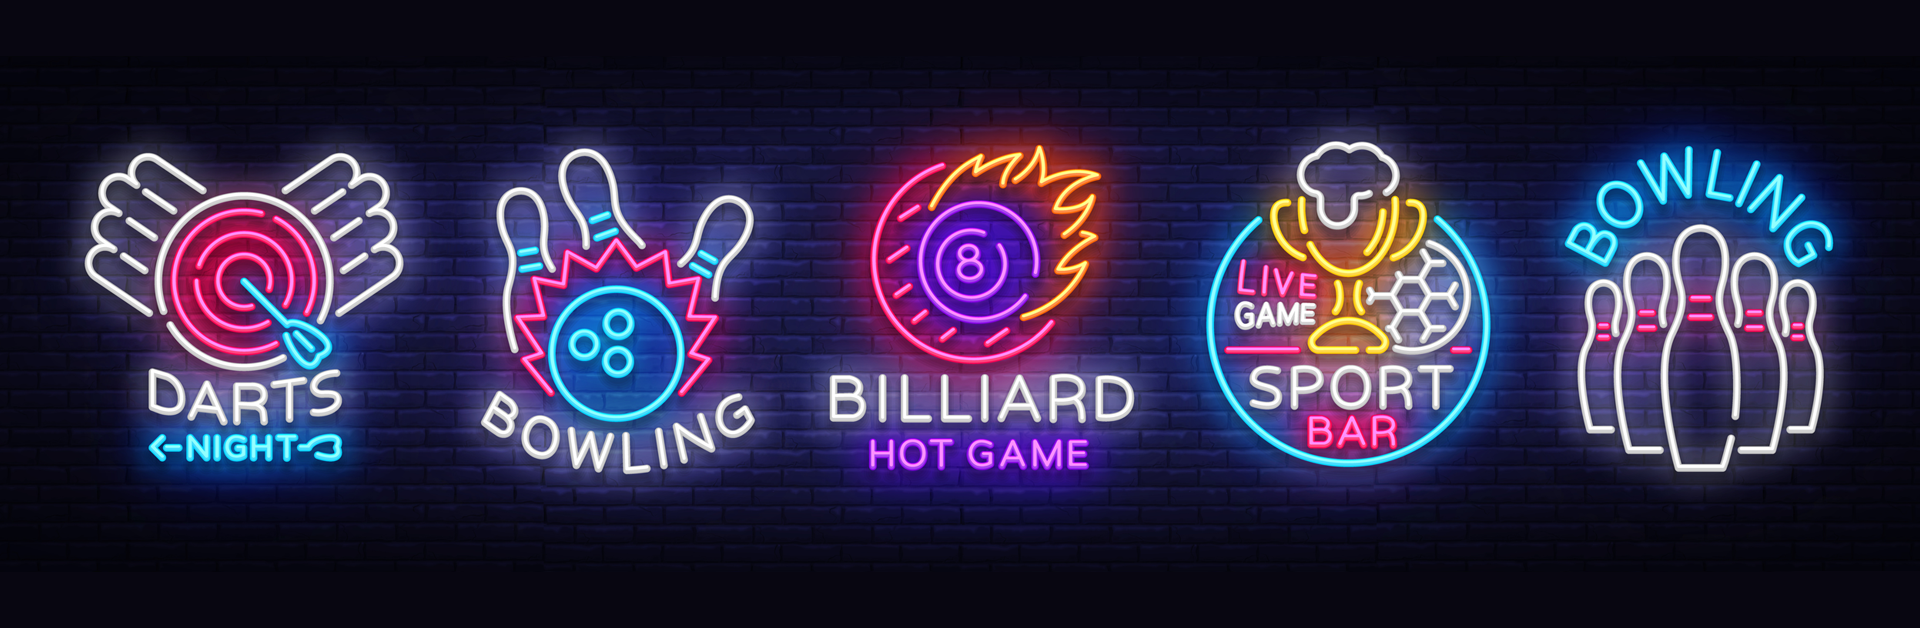 neon-signs